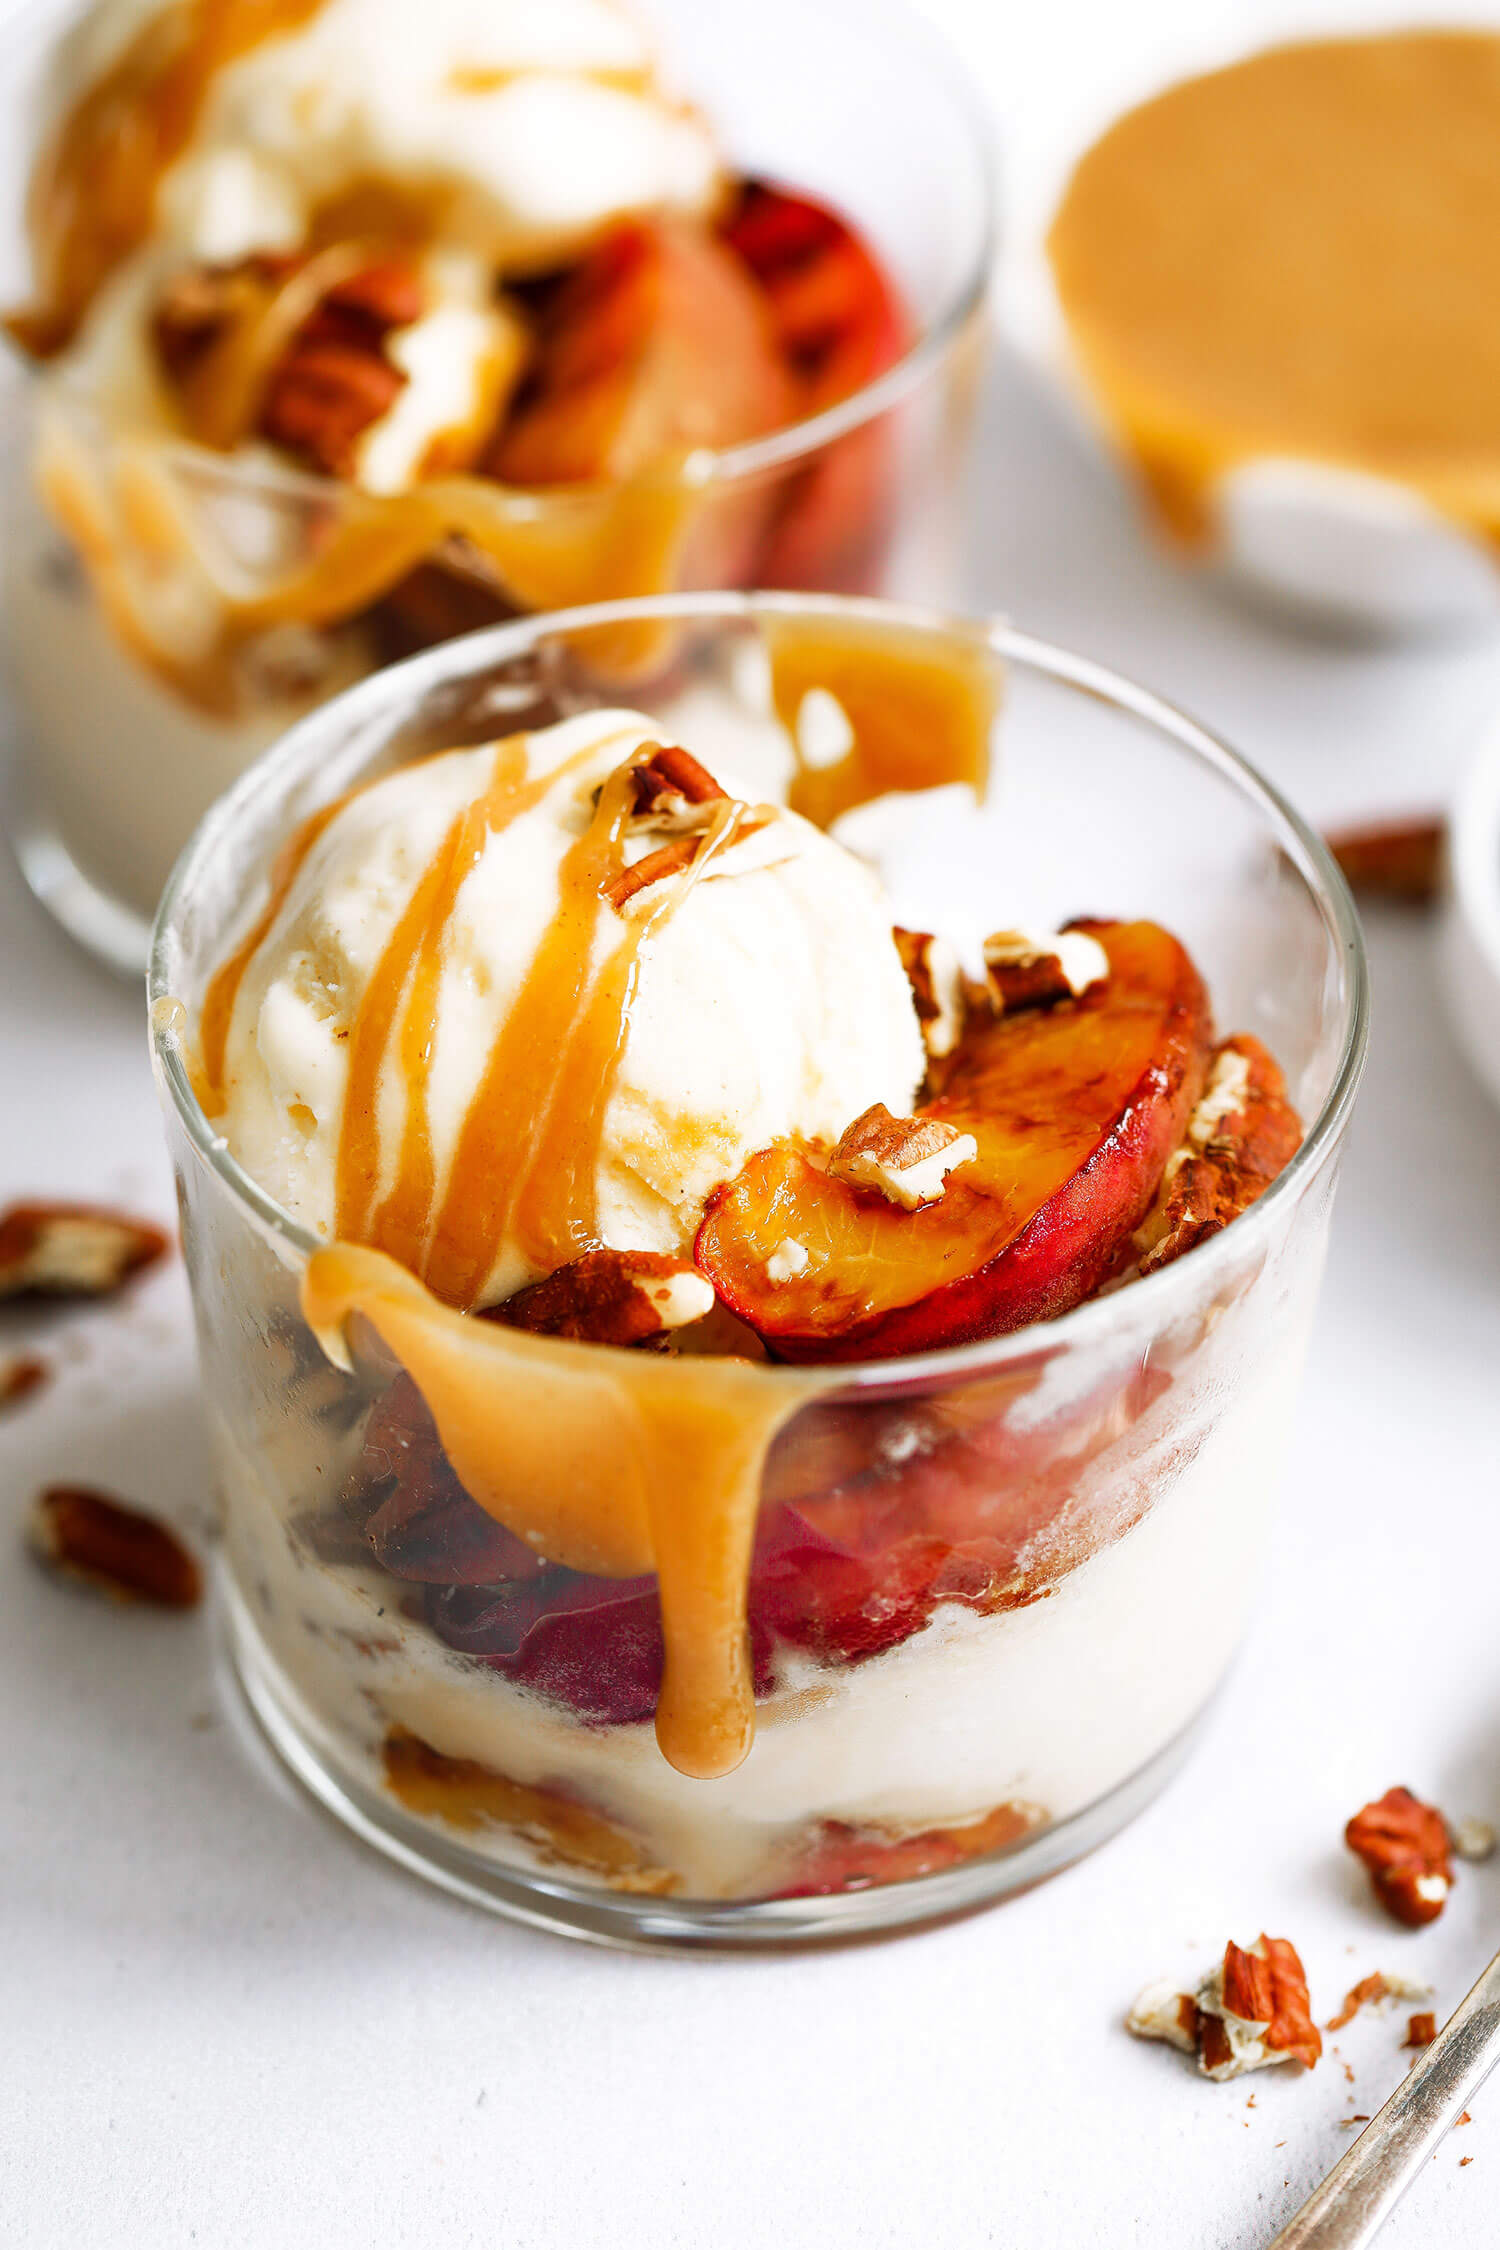 Vegan Grilled Peach Sundae